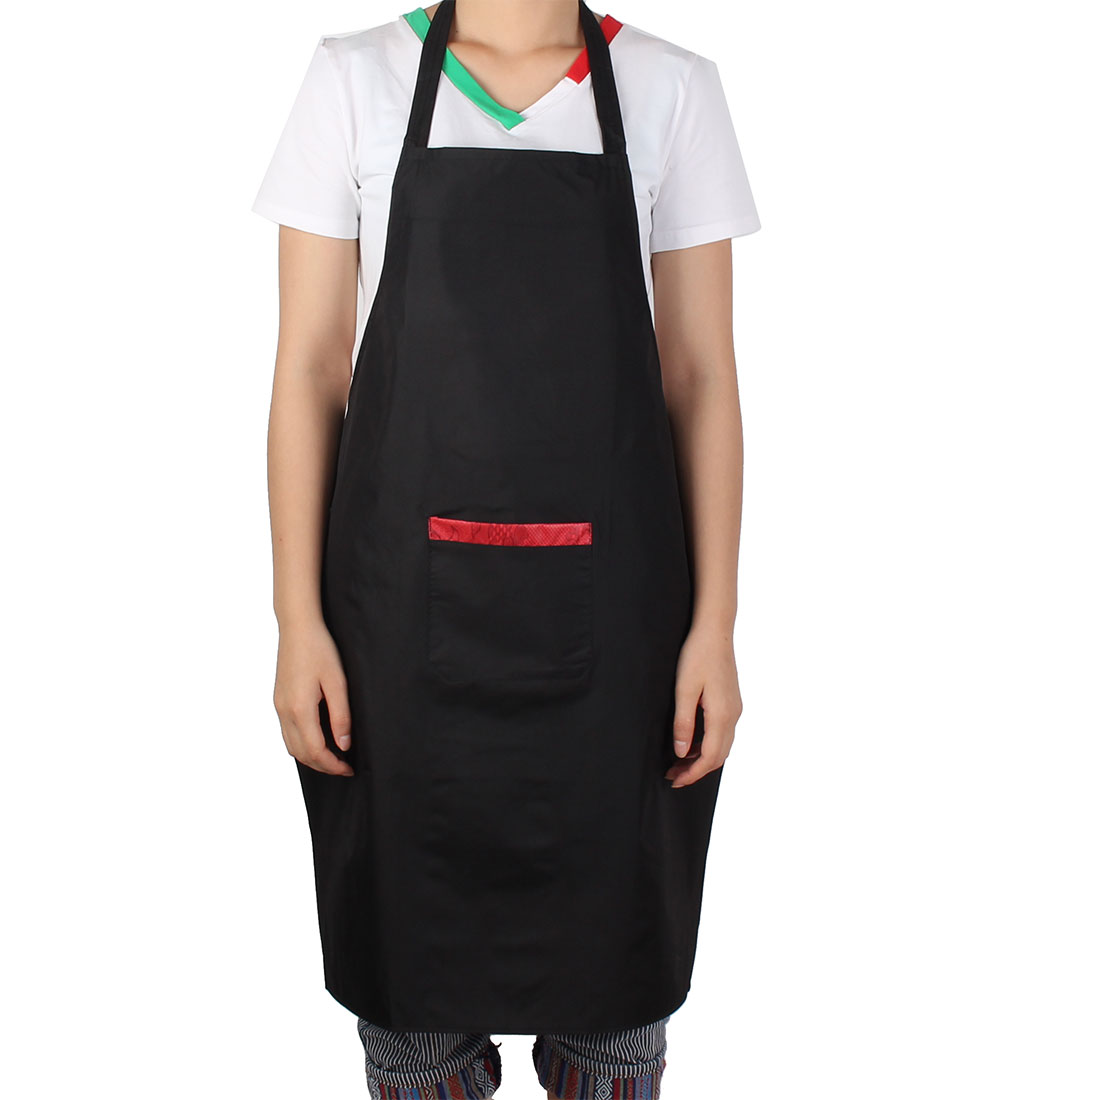 Home Hotel Restaurant Cafe Fruit Shop Single Bib Pocket Self Tie Strap Apron Black Red